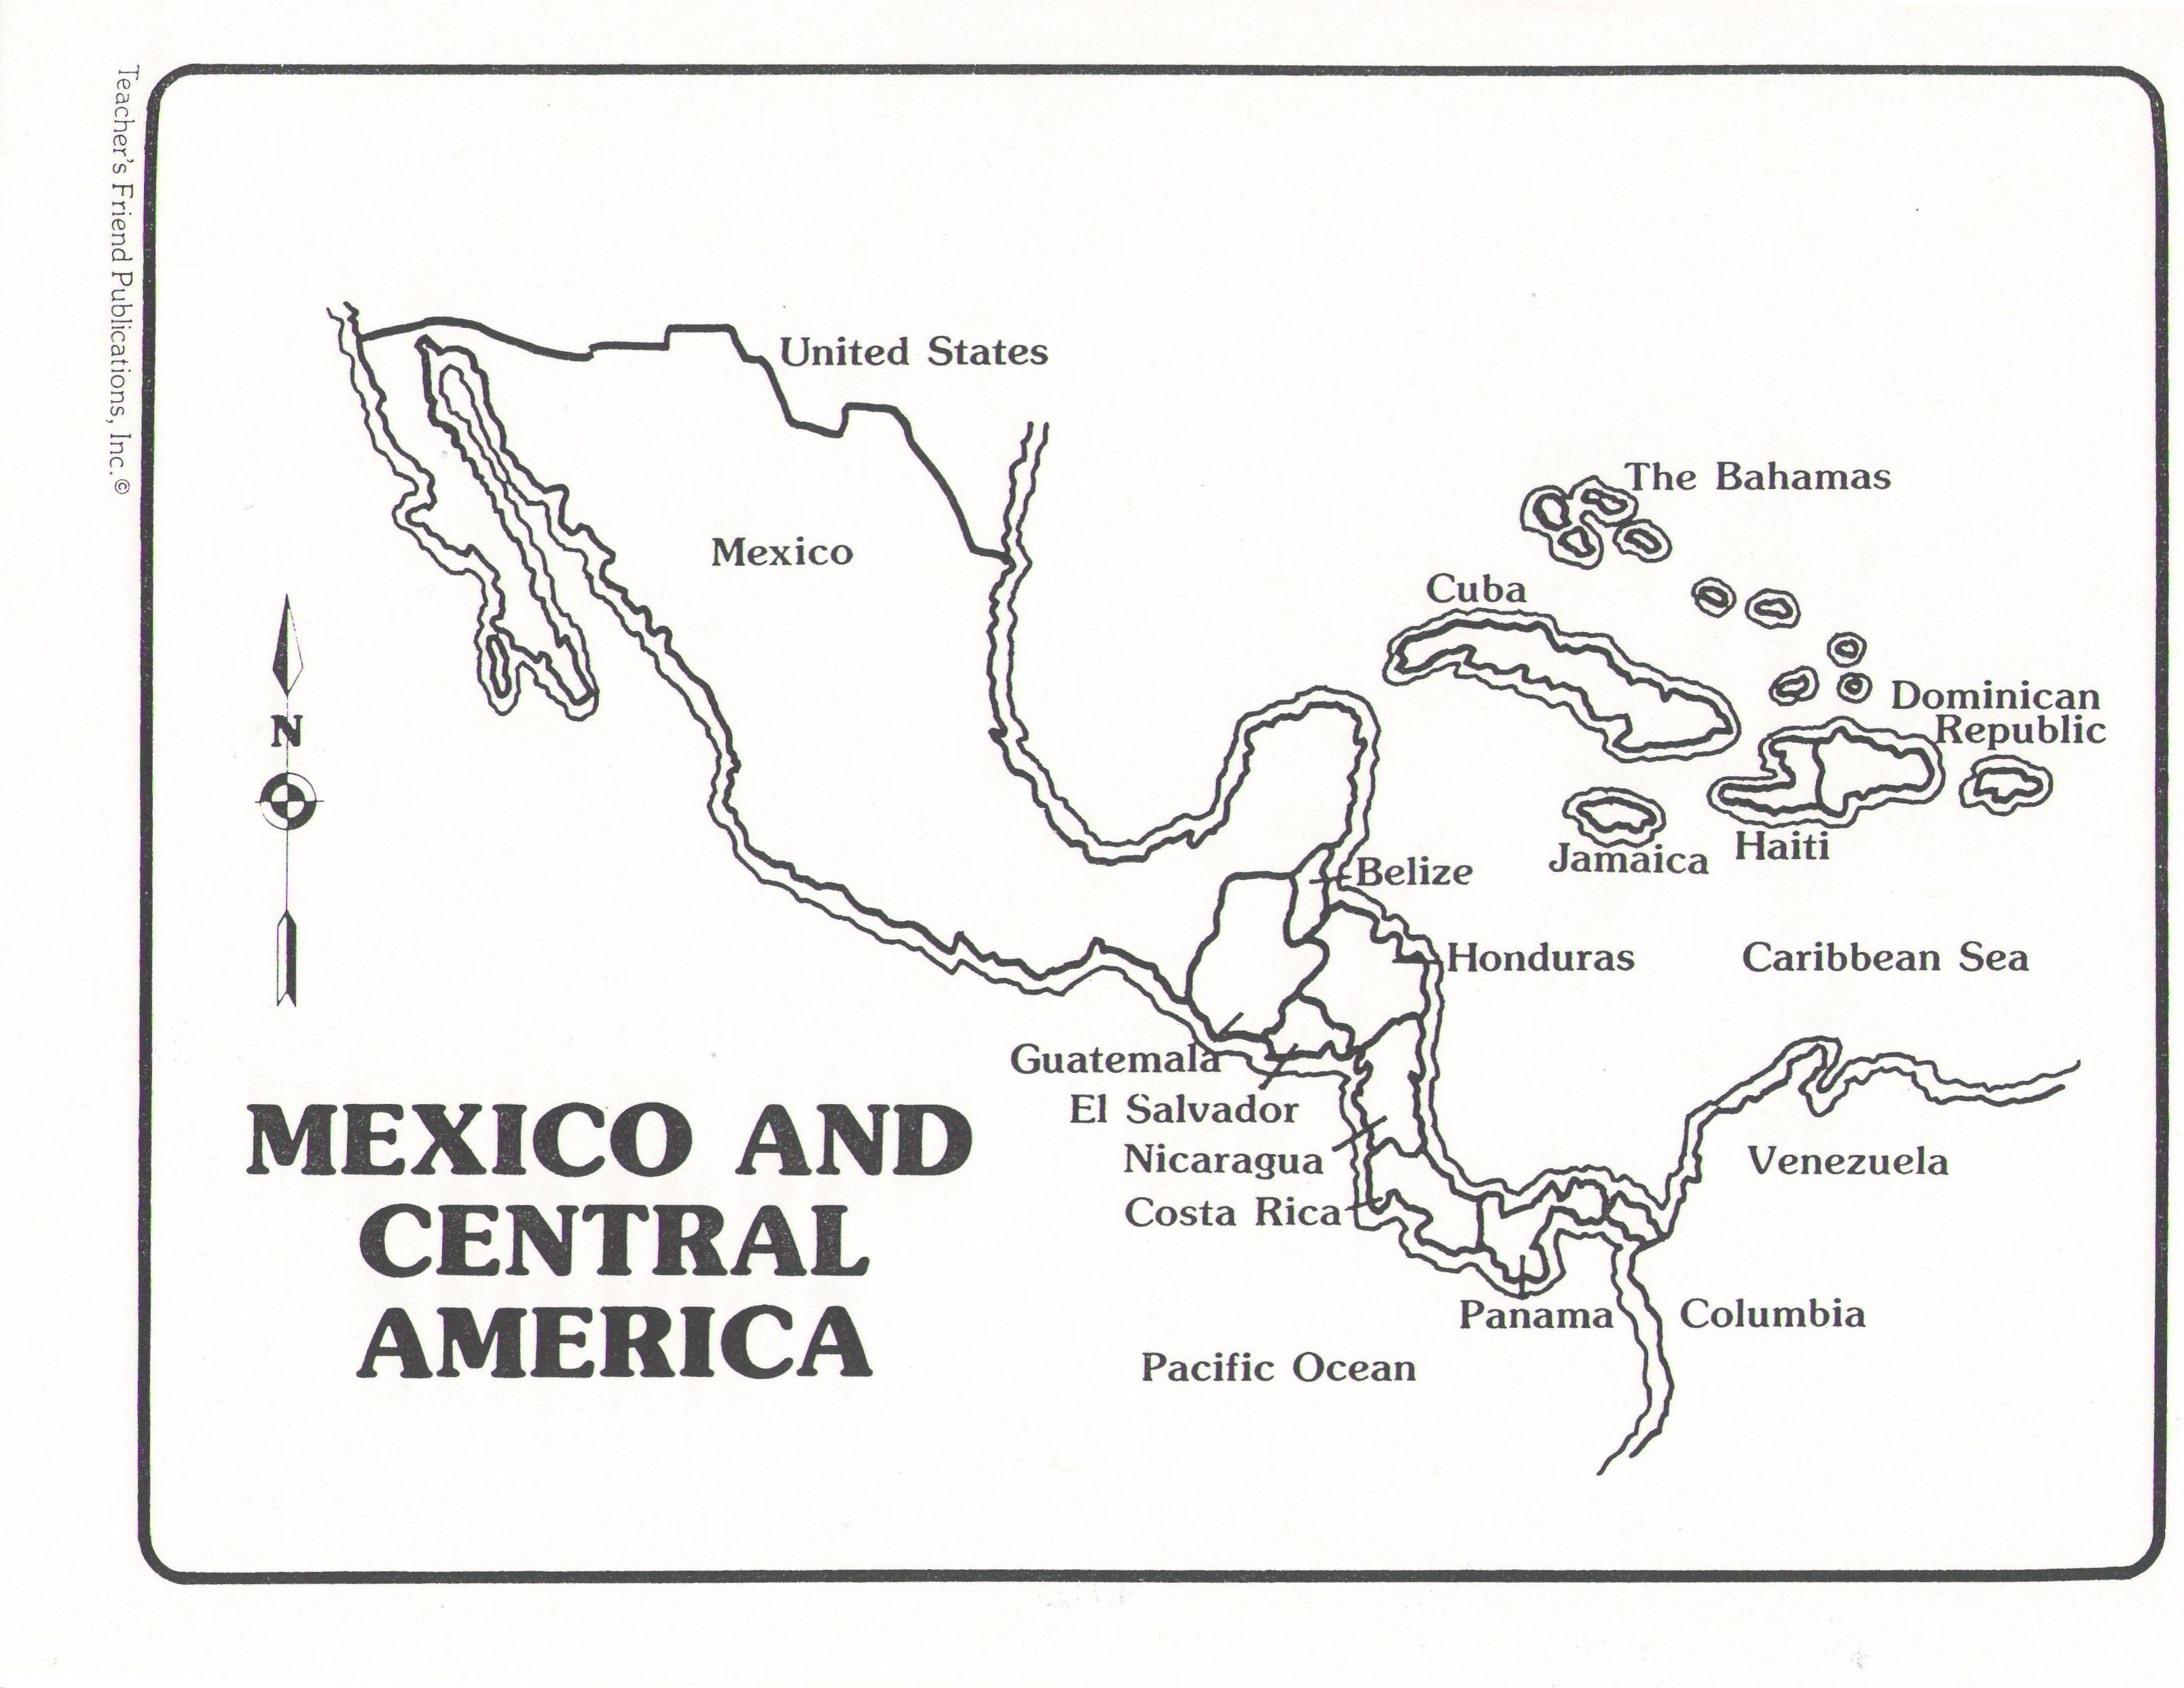 coloring pages for spanish class - coloring sheet map of central america google search